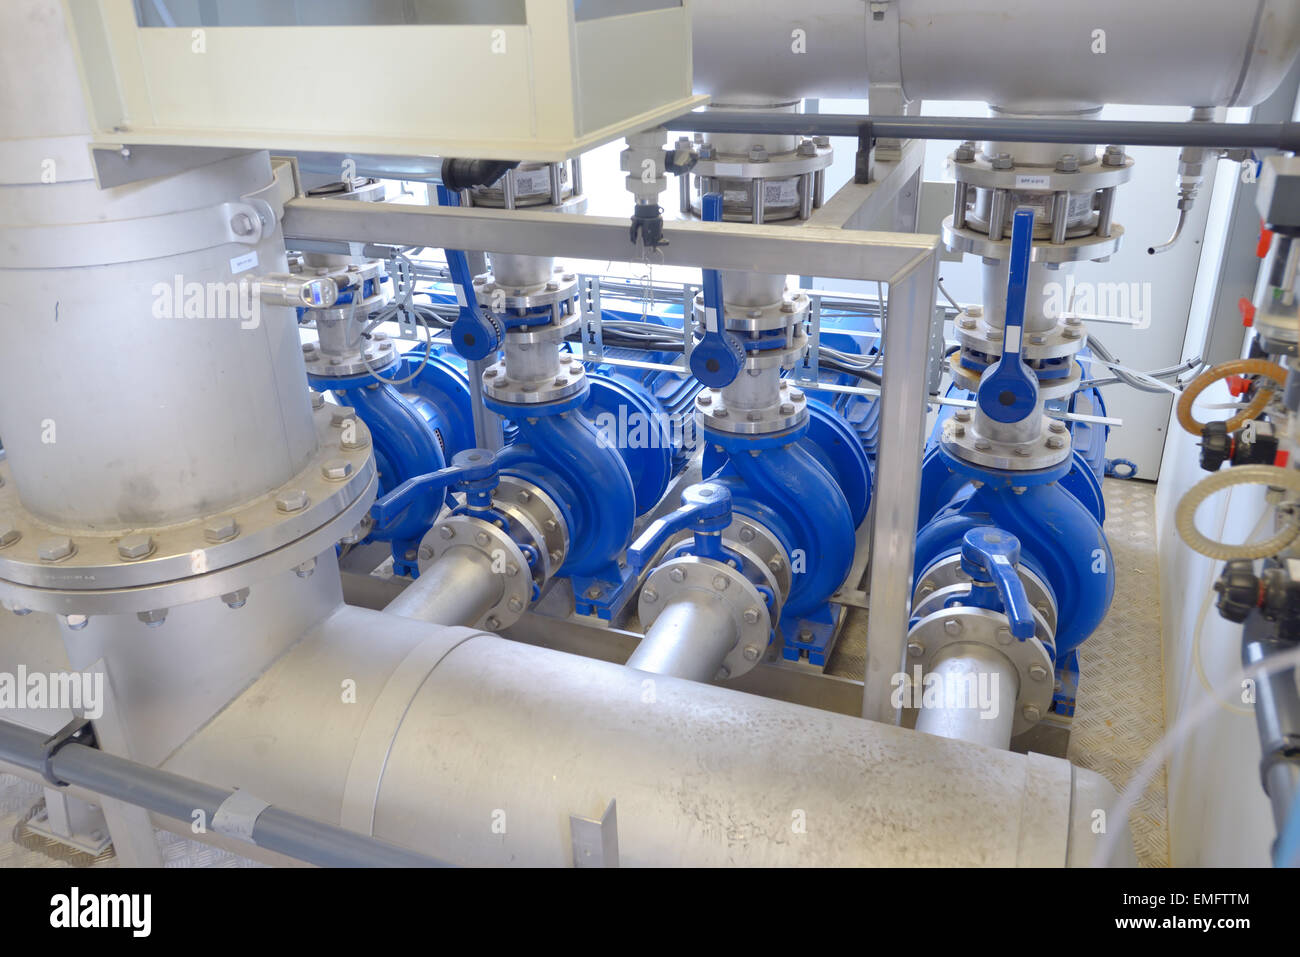 Water purification filter equipment in plant - Stock Image